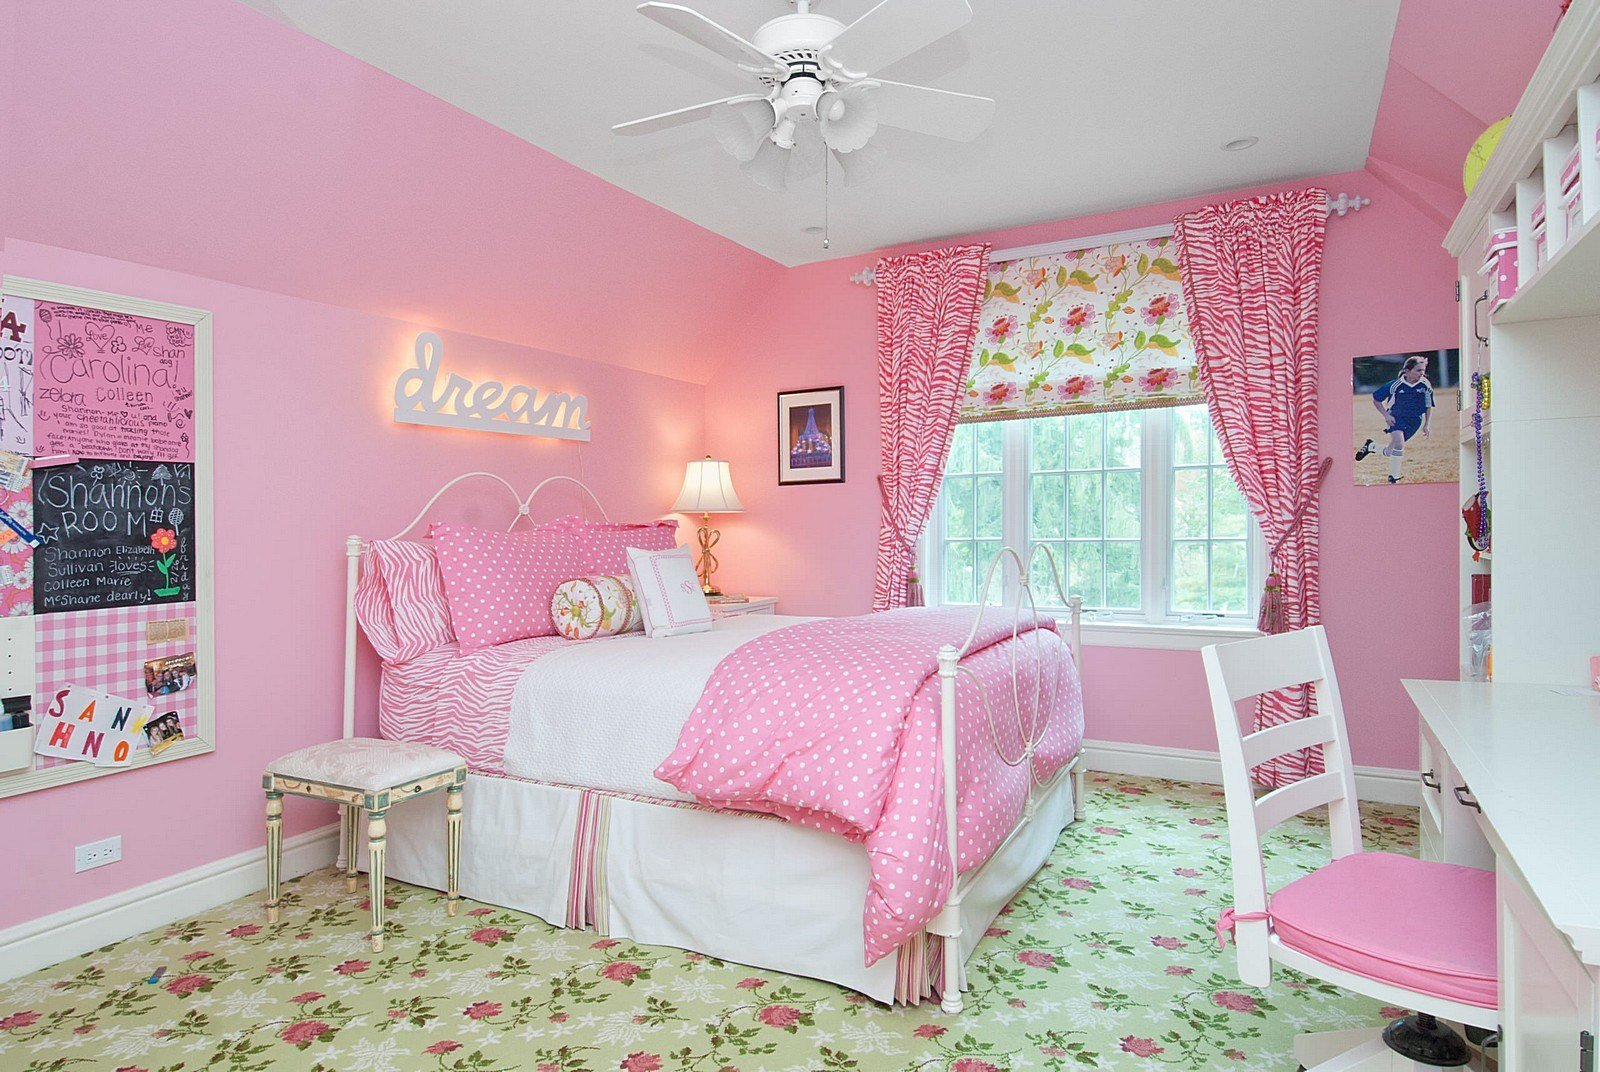 Best Feminine Bedroom Ideas For A M*T*R* Woman Theydesign Net With Pictures